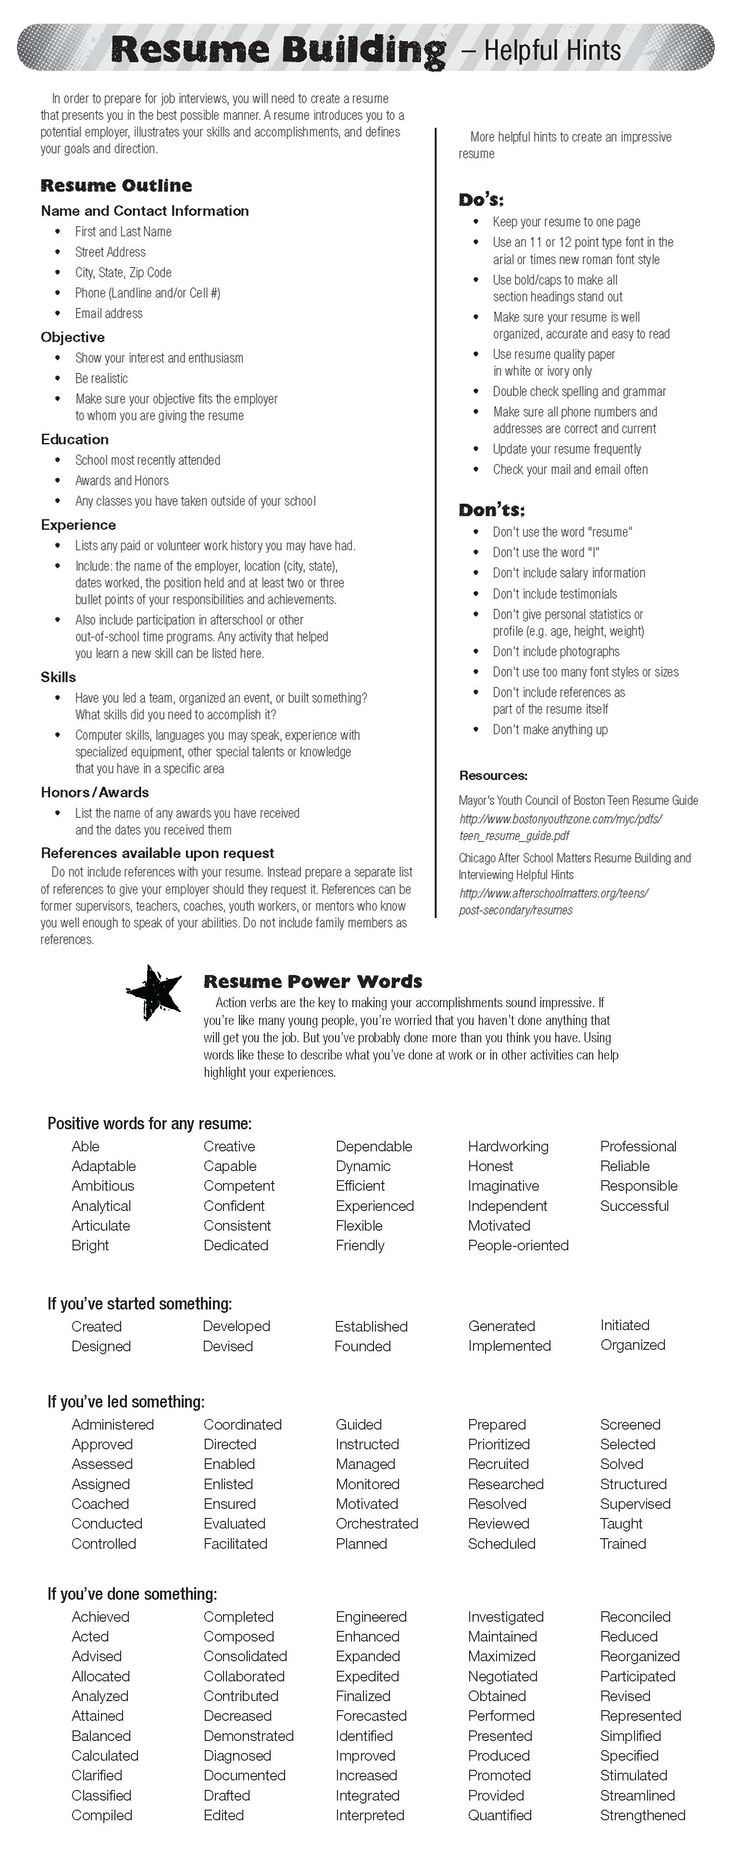 Picnictoimpeachus  Picturesque  Ideas About Resume On Pinterest  Cv Format Resume Cv And  With Entrancing  Ideas About Resume On Pinterest  Cv Format Resume Cv And Resume Templates With Extraordinary Accounting Sample Resume Also Resume For A Waitress In Addition How To Make An Effective Resume And Mba Resume Format As Well As Dental Assistant Sample Resume Additionally Sample Restaurant Manager Resume From Pinterestcom With Picnictoimpeachus  Entrancing  Ideas About Resume On Pinterest  Cv Format Resume Cv And  With Extraordinary  Ideas About Resume On Pinterest  Cv Format Resume Cv And Resume Templates And Picturesque Accounting Sample Resume Also Resume For A Waitress In Addition How To Make An Effective Resume From Pinterestcom